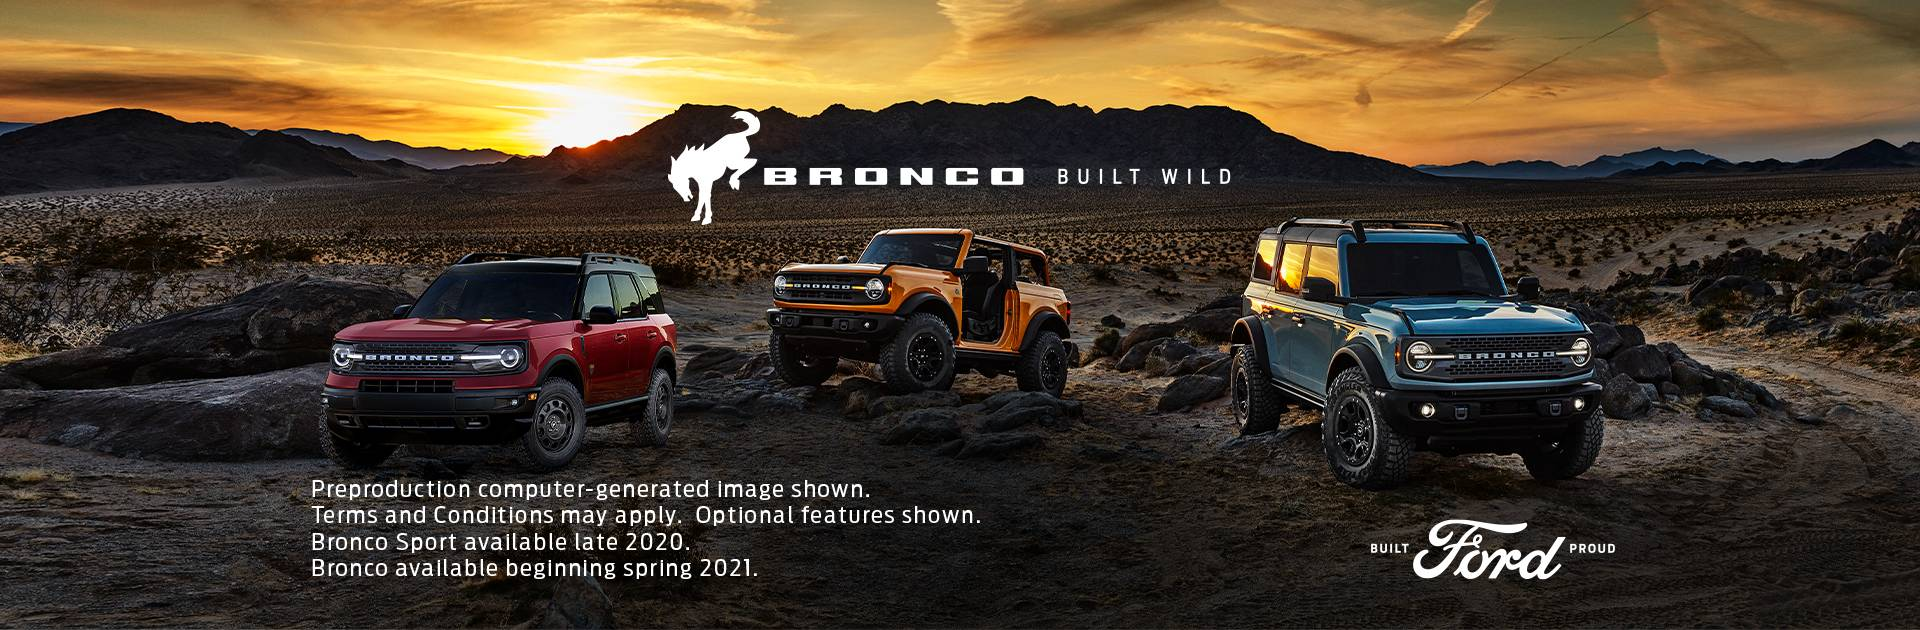 Broncoreveal Dealercon 1920x6301